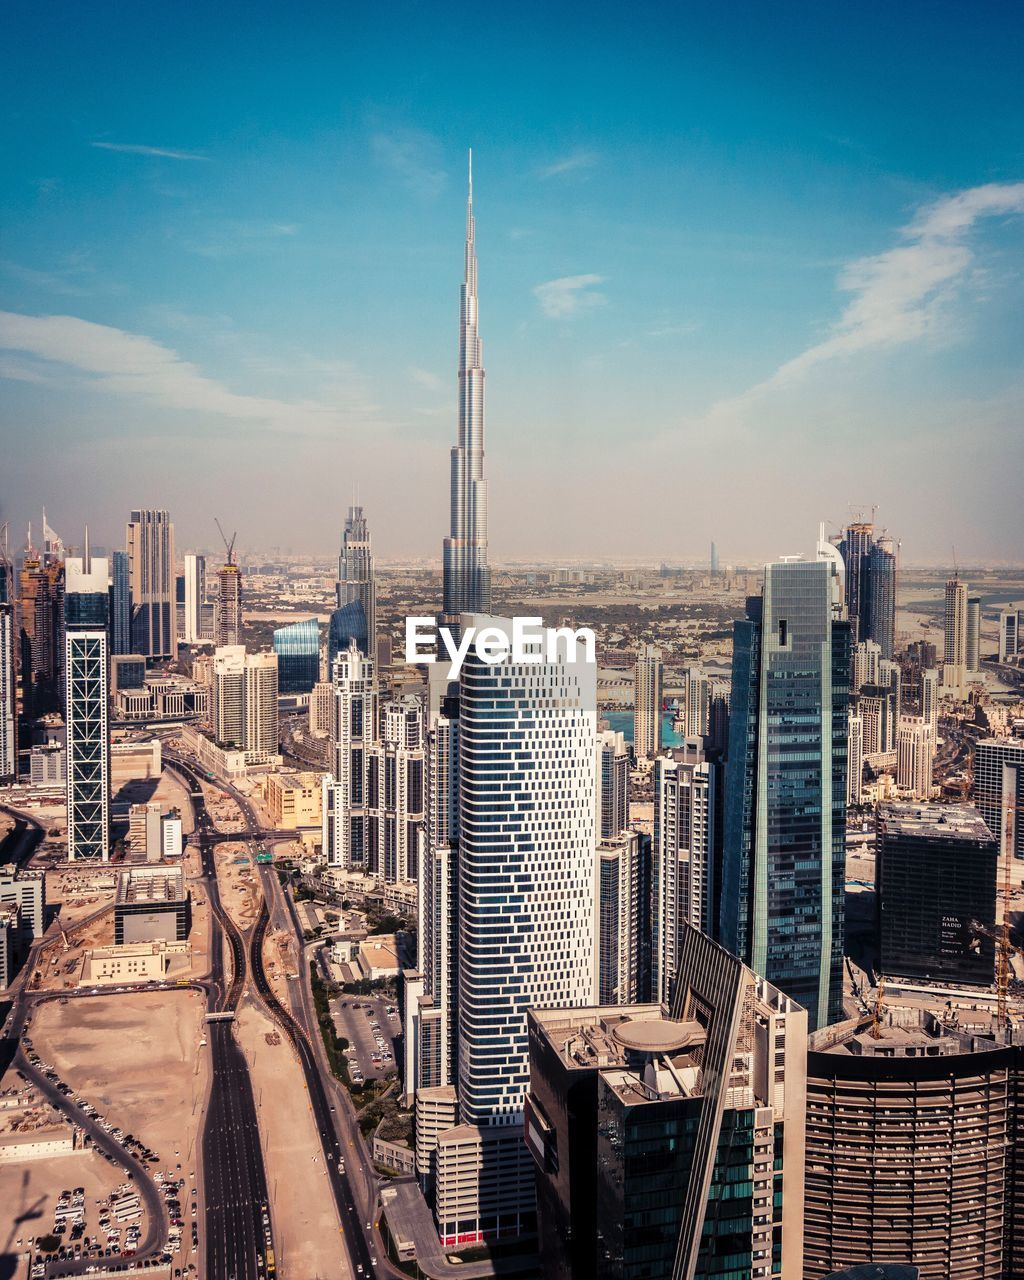 architecture, skyscraper, city, built structure, cityscape, building exterior, tower, sky, modern, no people, travel destinations, growth, outdoors, tall, day, urban skyline